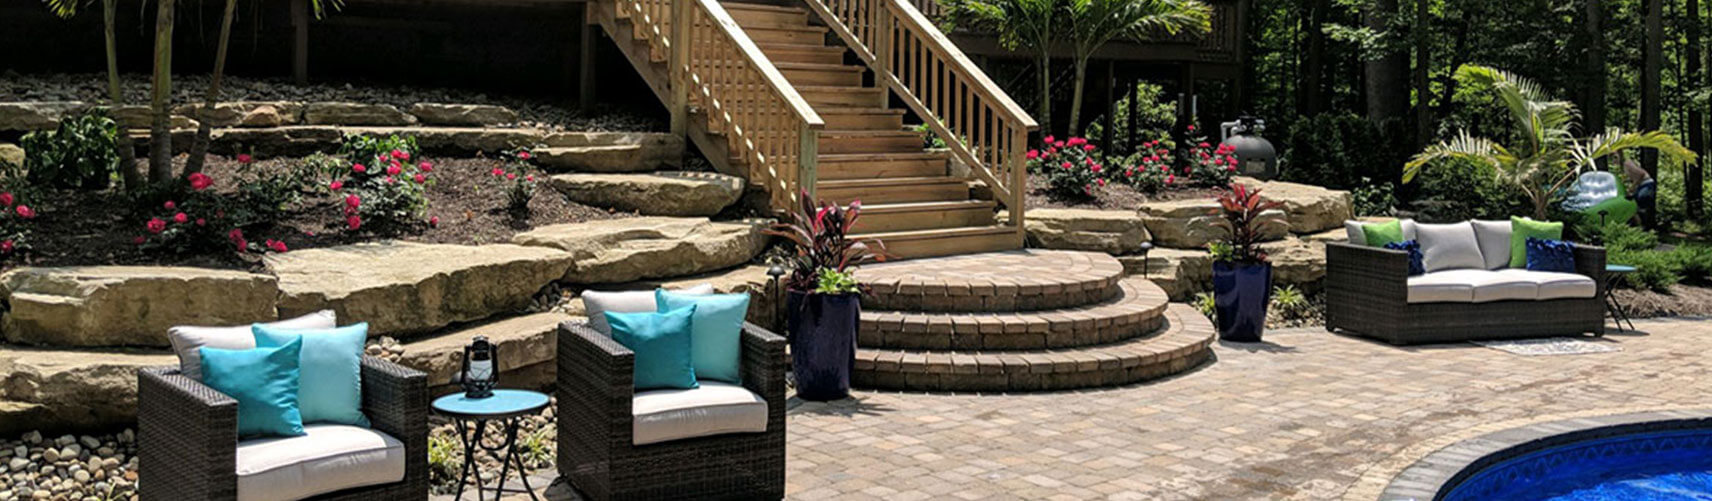 Mentor Landscape Design, Landscaping Company and Excavation Contractor